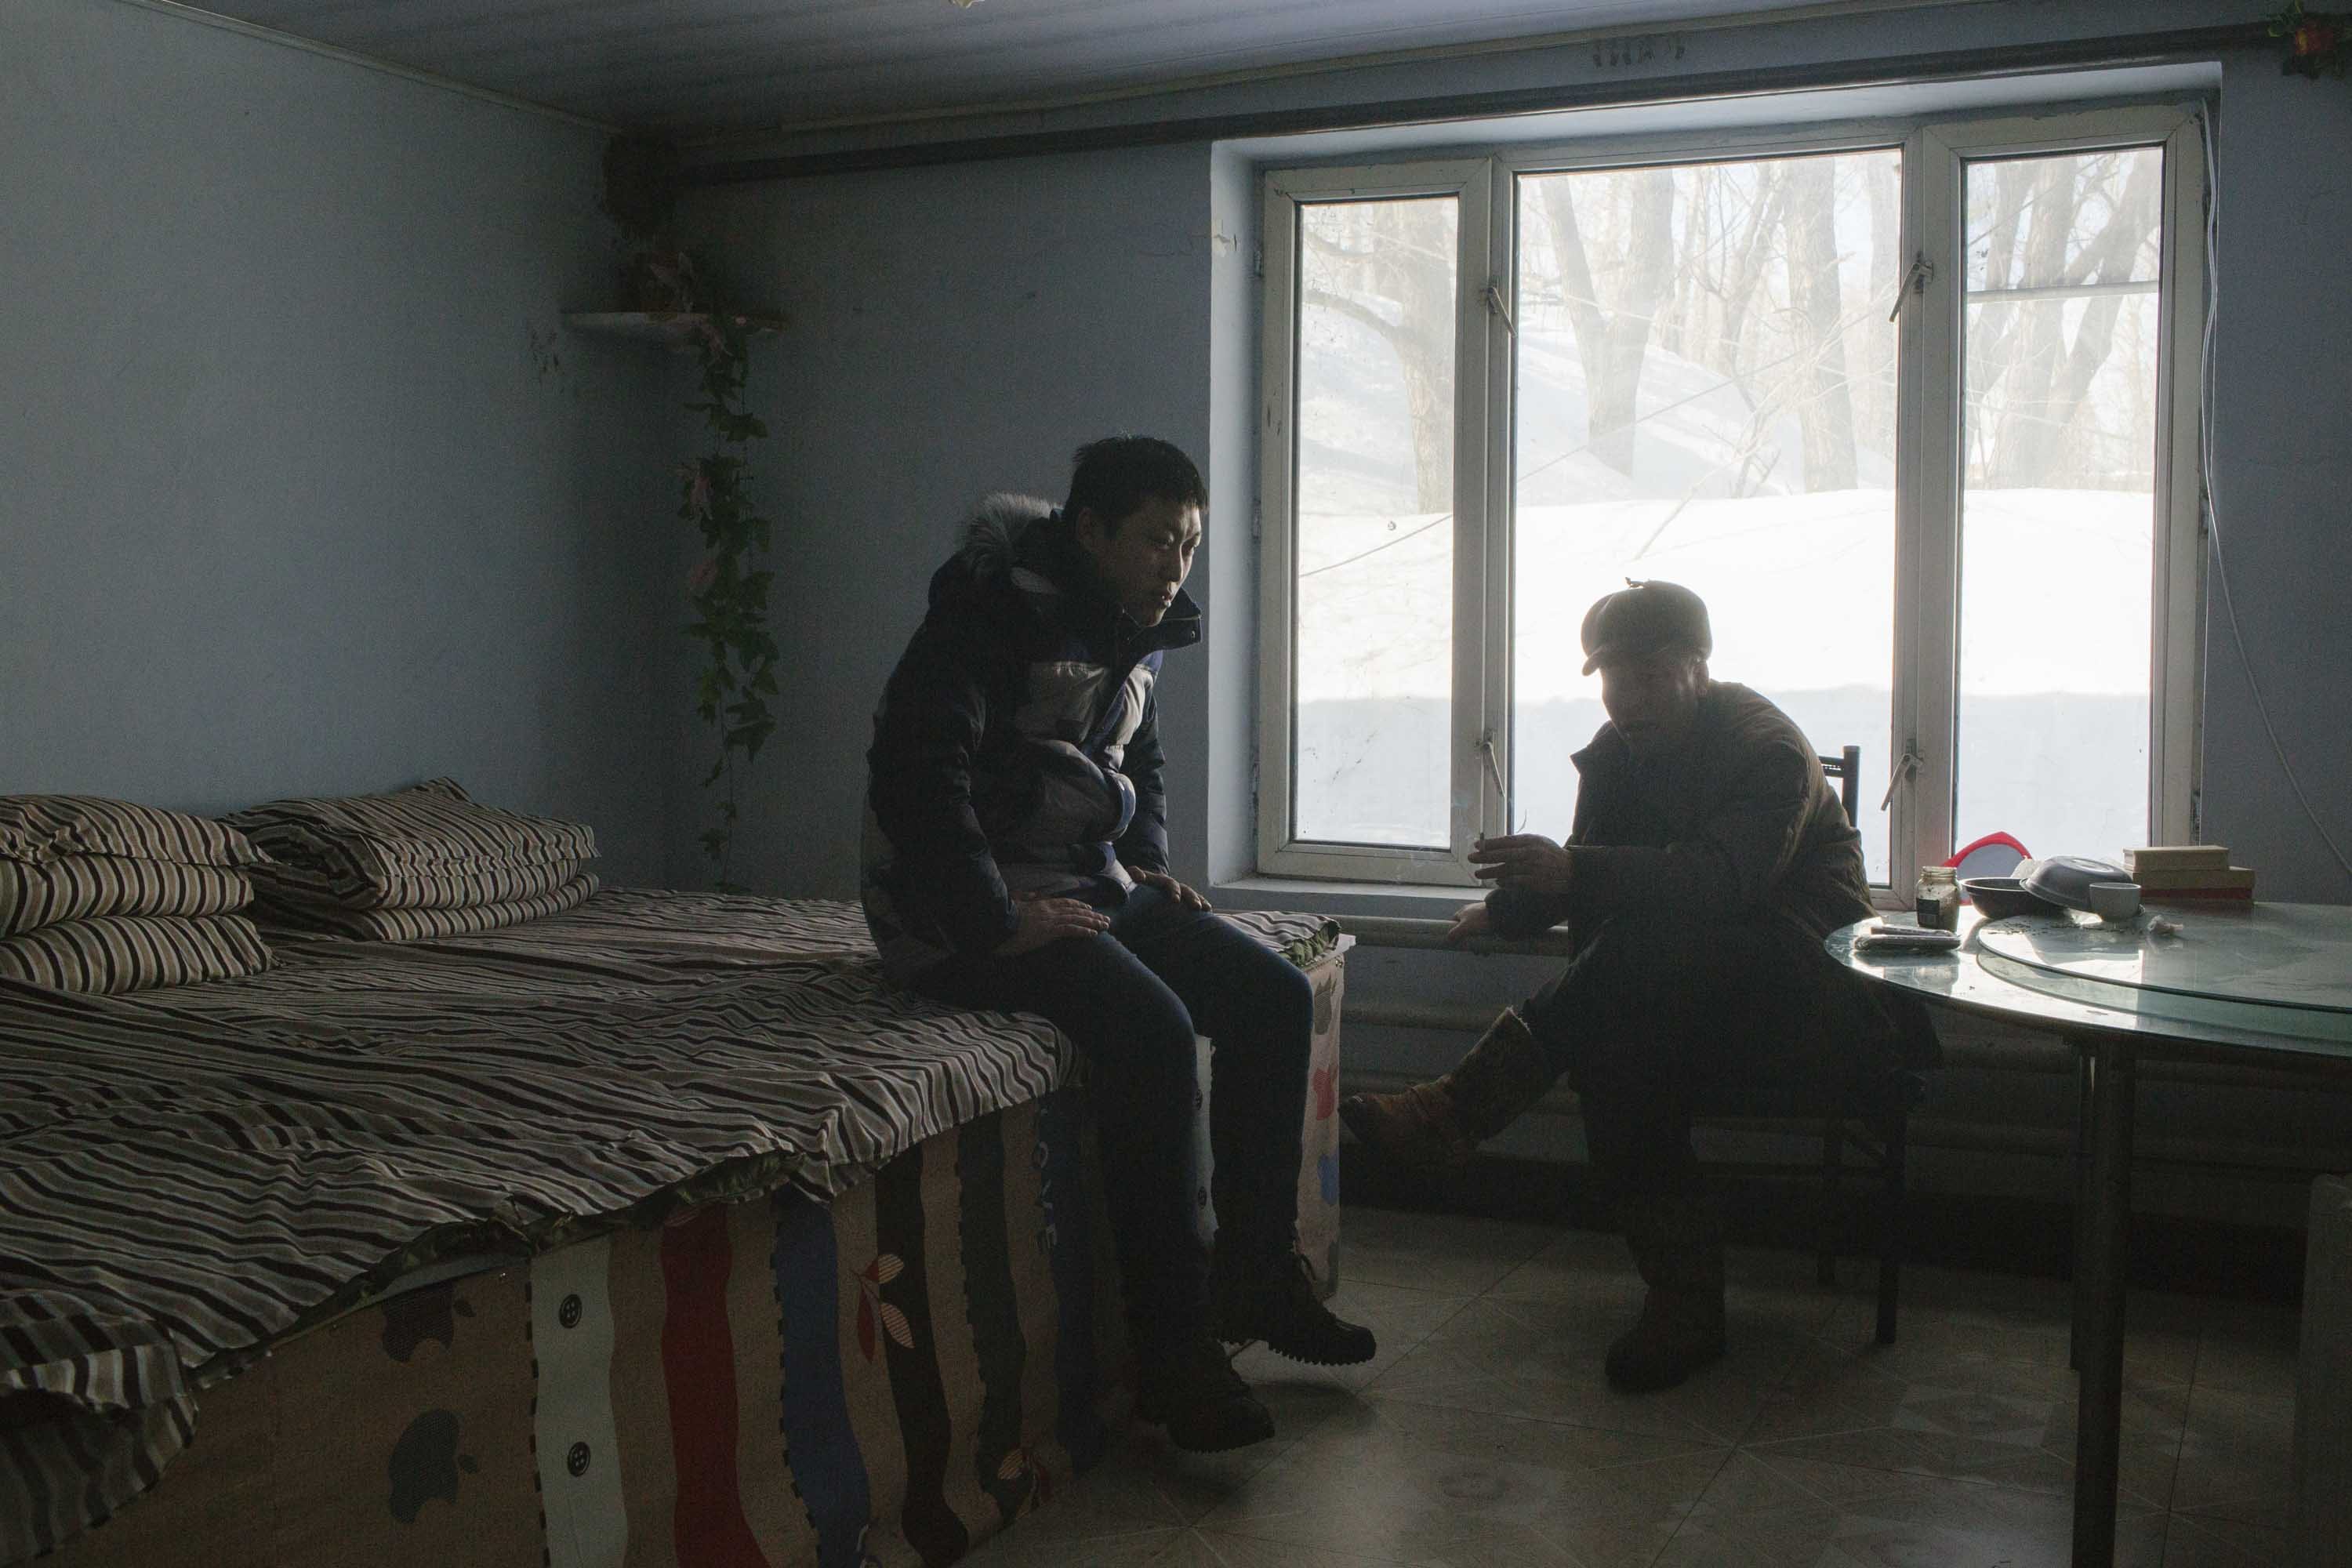 Xia Yan and his father chat with each other the day after Zhang Tianqi's wedding, Shuangyashan, Jan. 27, 2016. Xia's father opened a small hotel for miners after he lost his high-powered mining position following a cerebral infarction. Zhou Pinglang/Sixth Tone